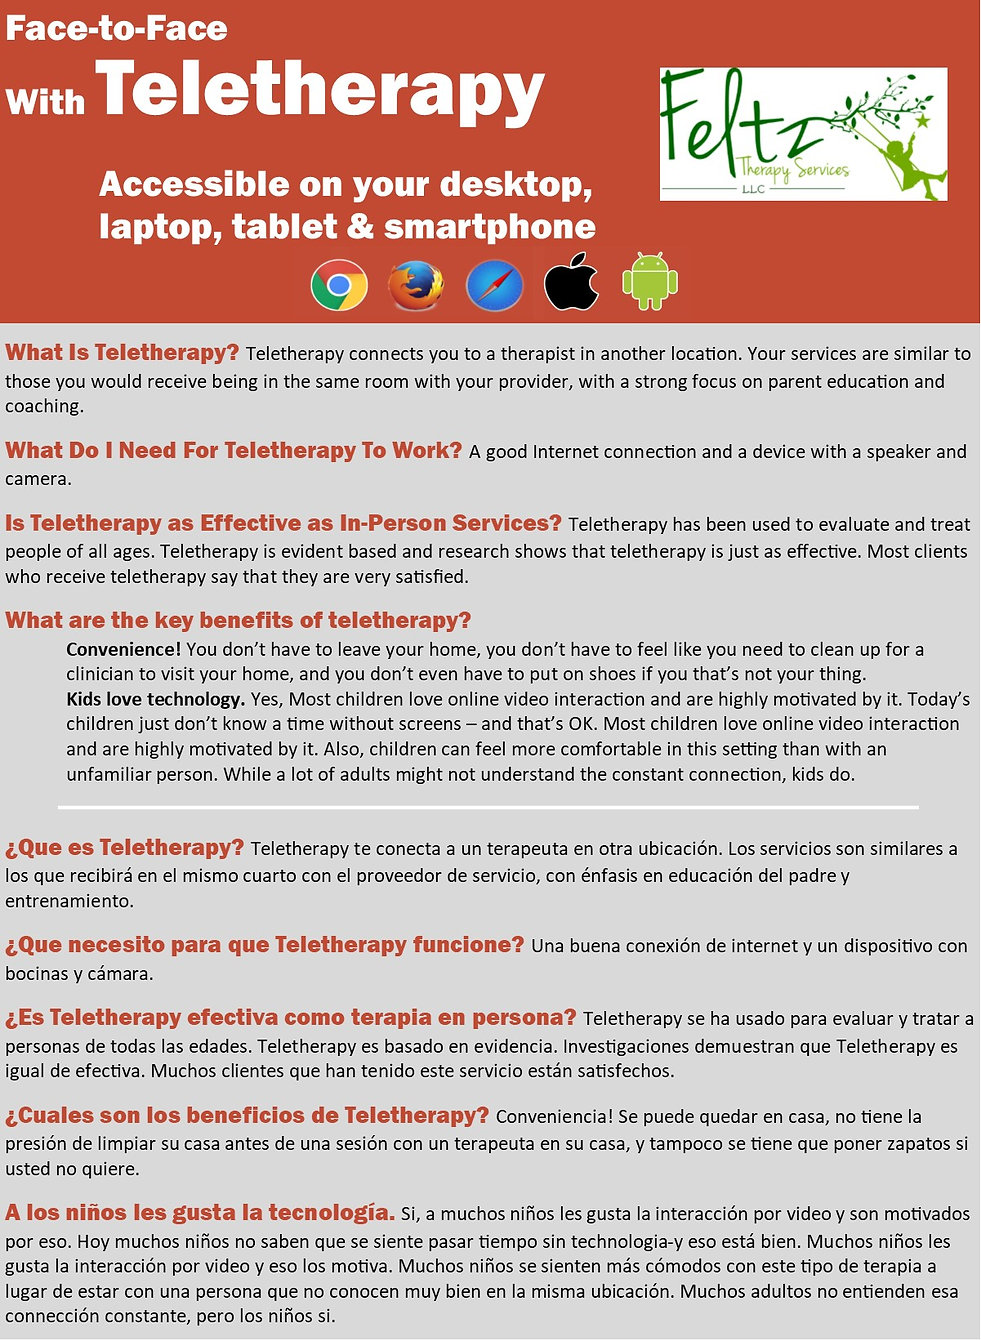 Teletherapy Flyer for Parents.jpg